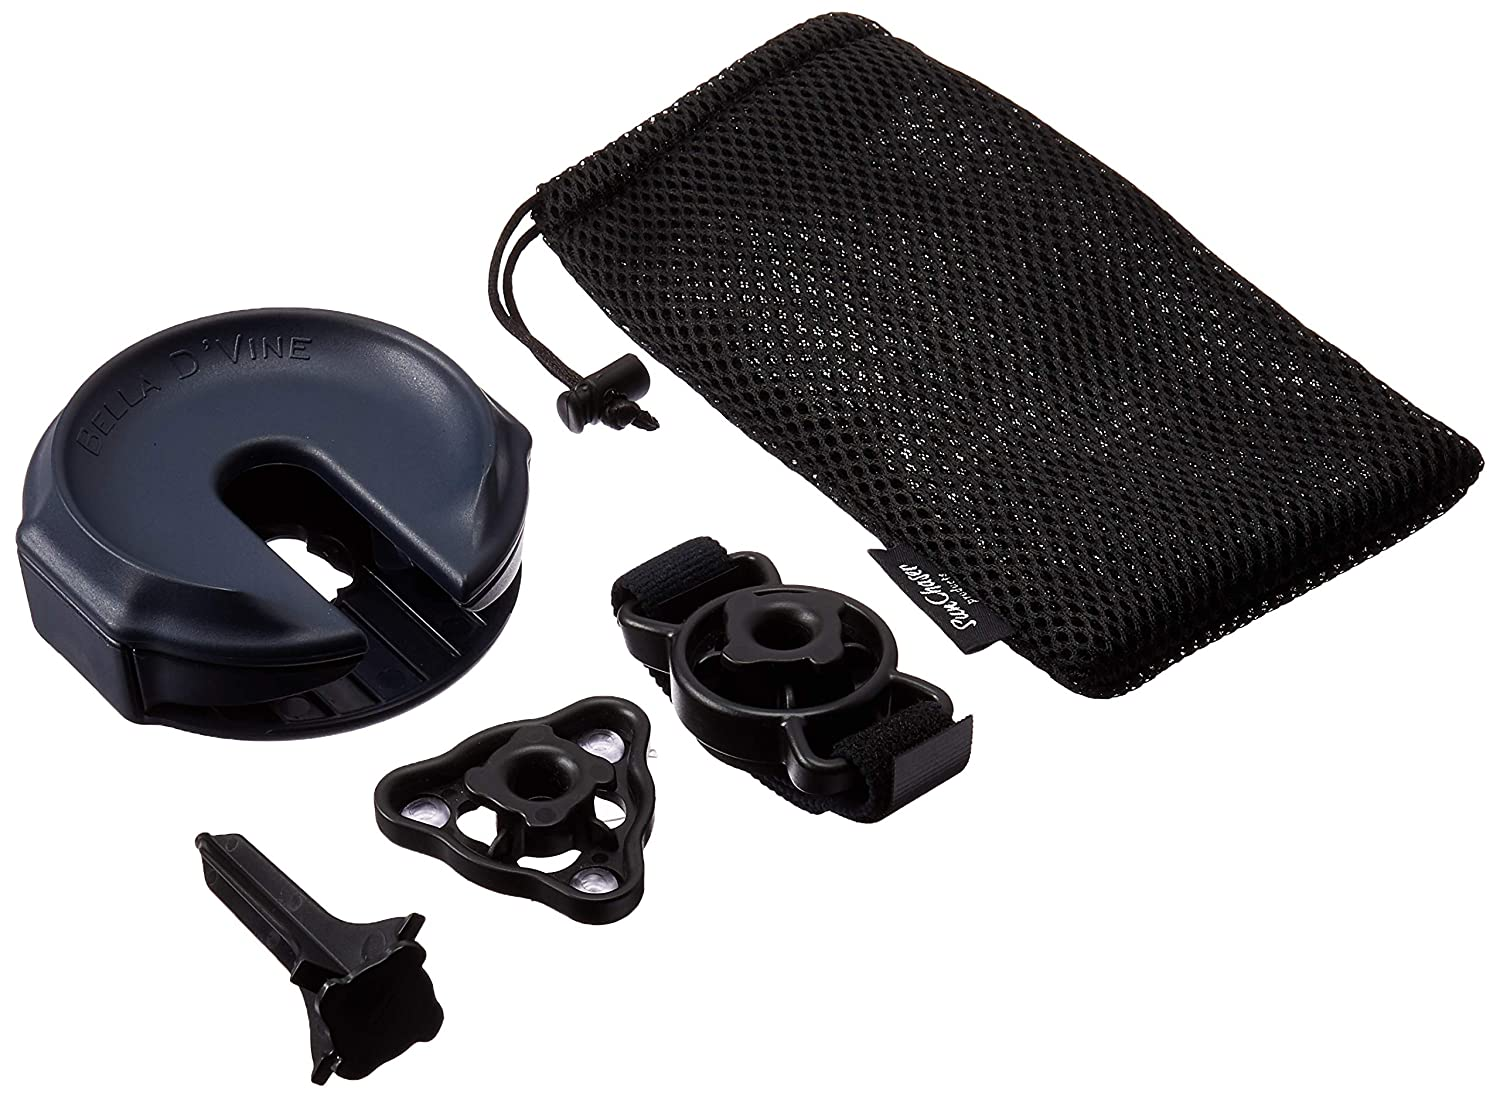 Great Wine Gift Suction Base For Boats Strap For Lawn Chairs Includes Wine Stake For Picnics Outdoor Wine Glass Holder Accessories by Bella D/'Vine Graphite Grey Bath and Hot Tubs